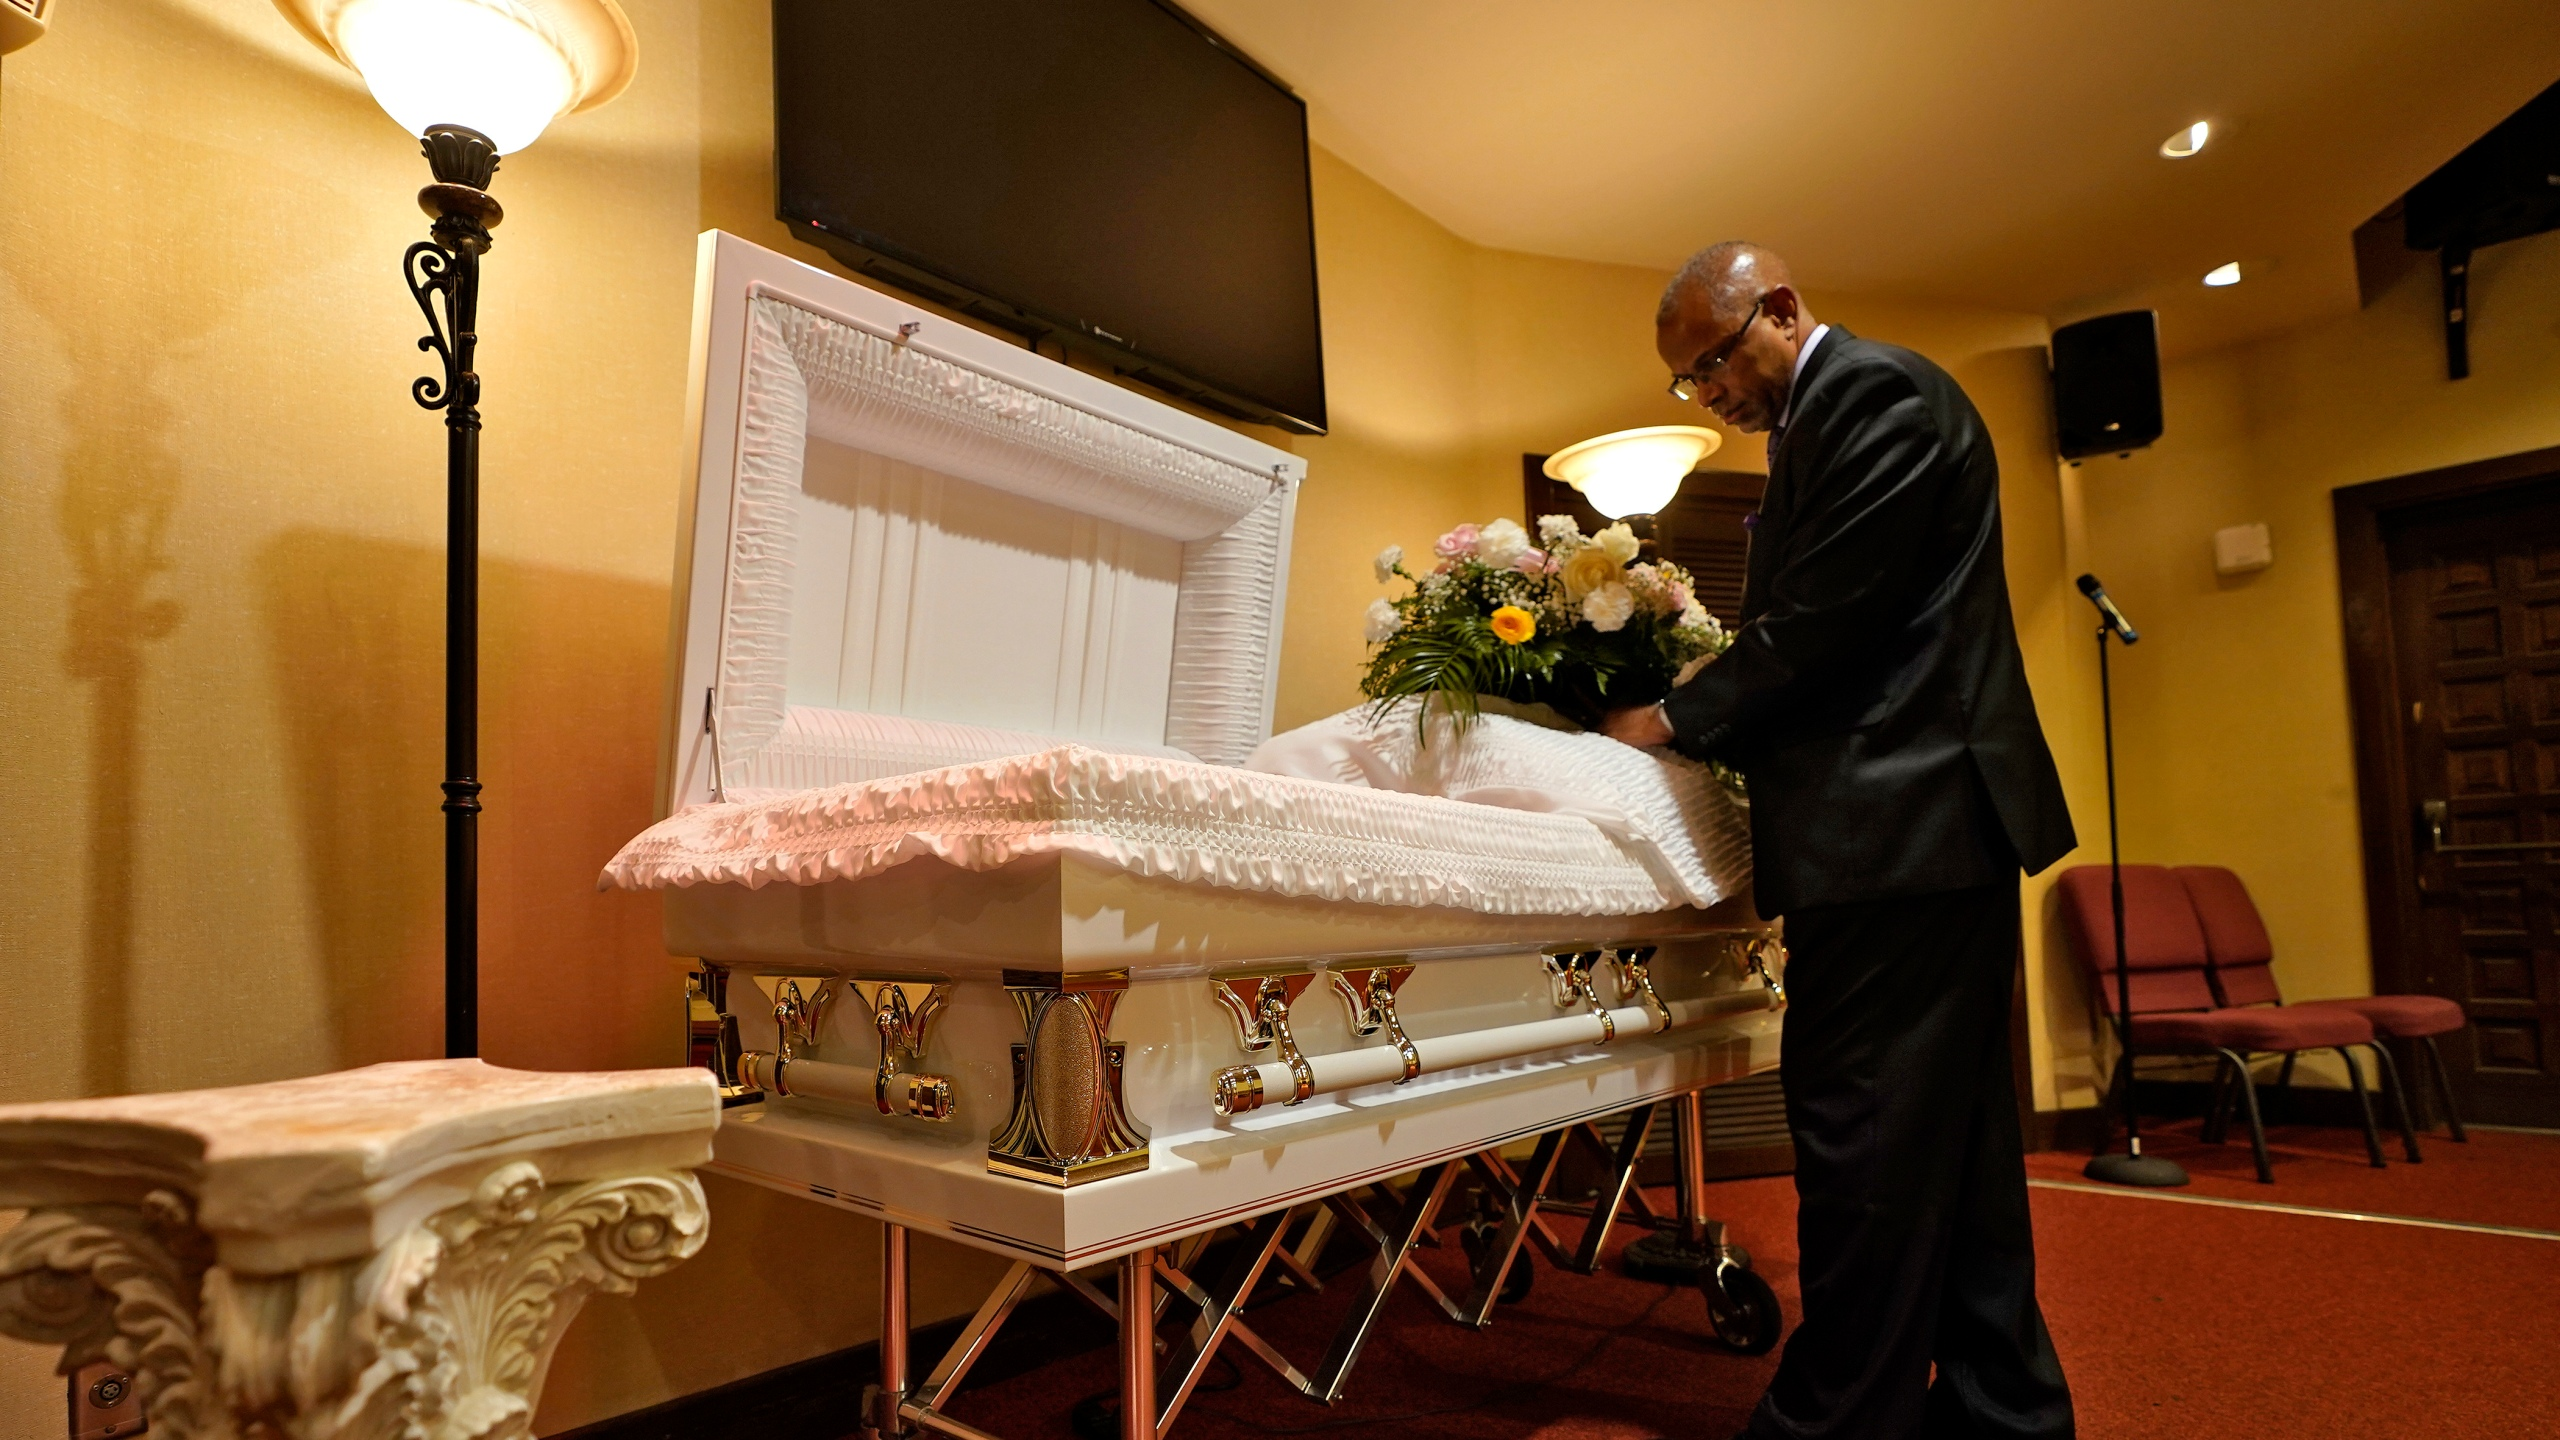 In this Thursday, Sept. 2, 2021 file photo, a funeral director arranges flowers on a casket before a service in Tampa, Fla. According to a study published Thursday, Oct. 7, 2021, by the medical journal Pediatrics, the number of U.S. children orphaned during the COVID-19 pandemic may be larger than previously estimated, and the toll has been far greater among Black and Hispanic Americans. (AP Photo/Chris O'Meara, File)